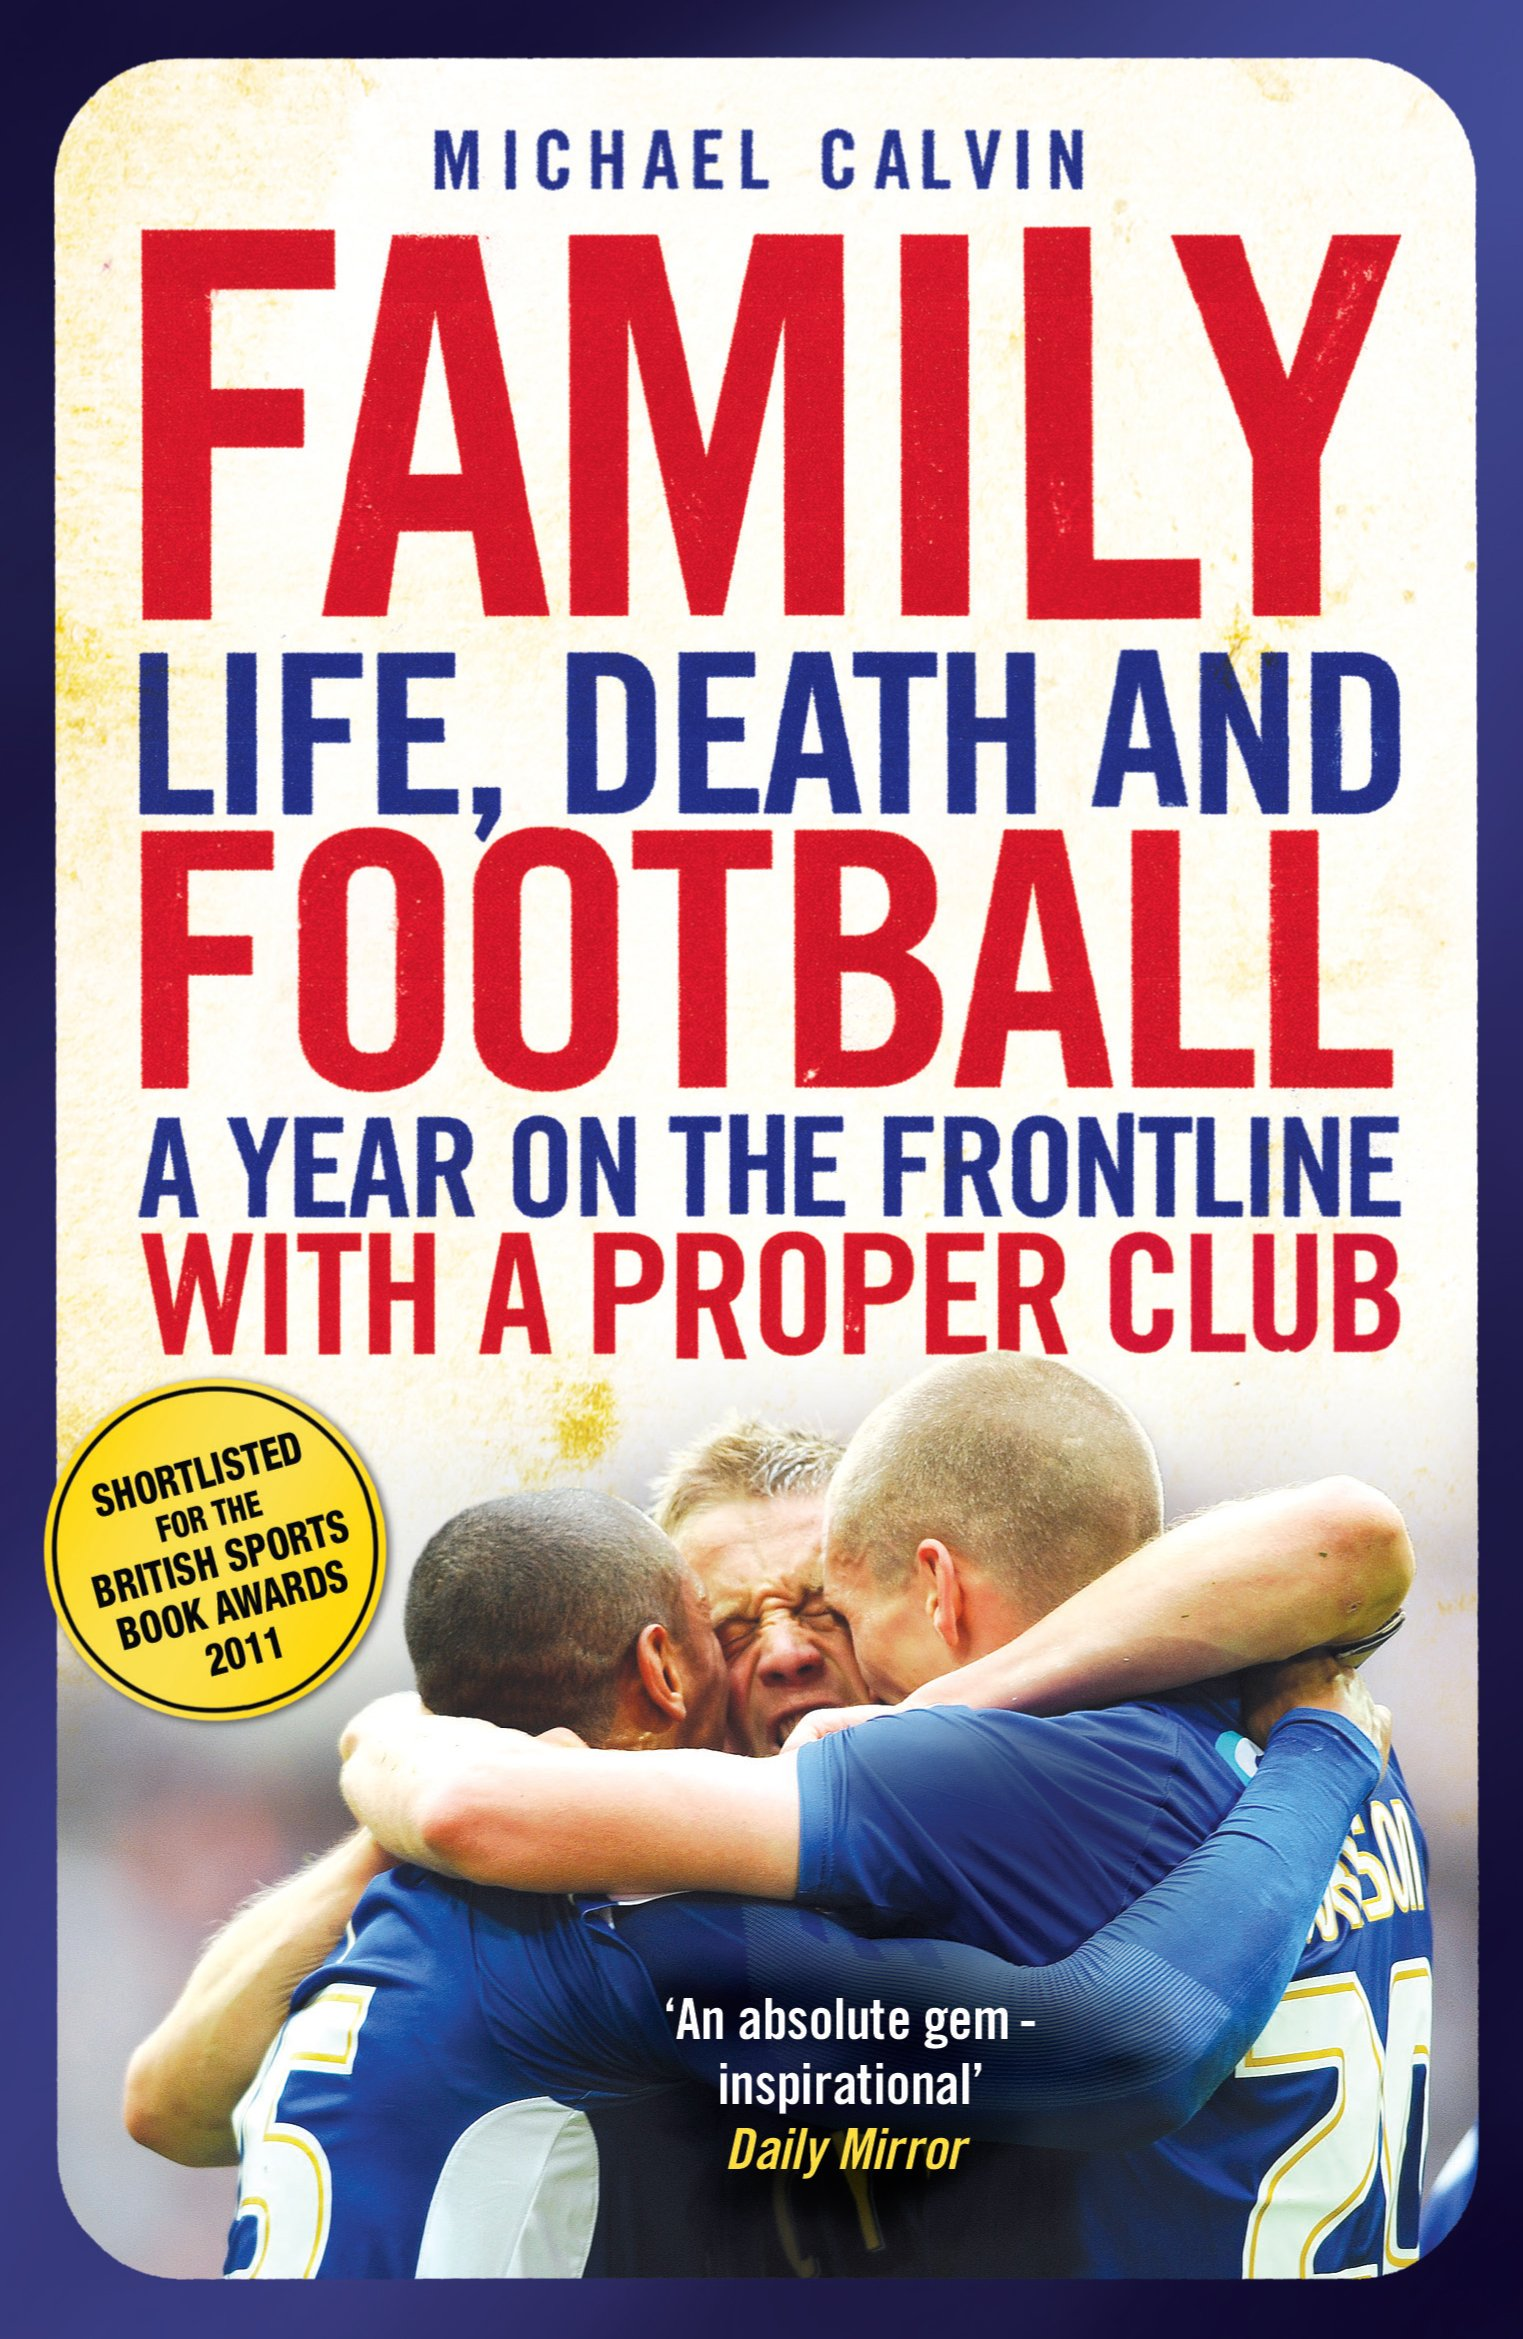 Download Family: Life, Death and Football - A Year on the Frontline with a Proper Club ebook